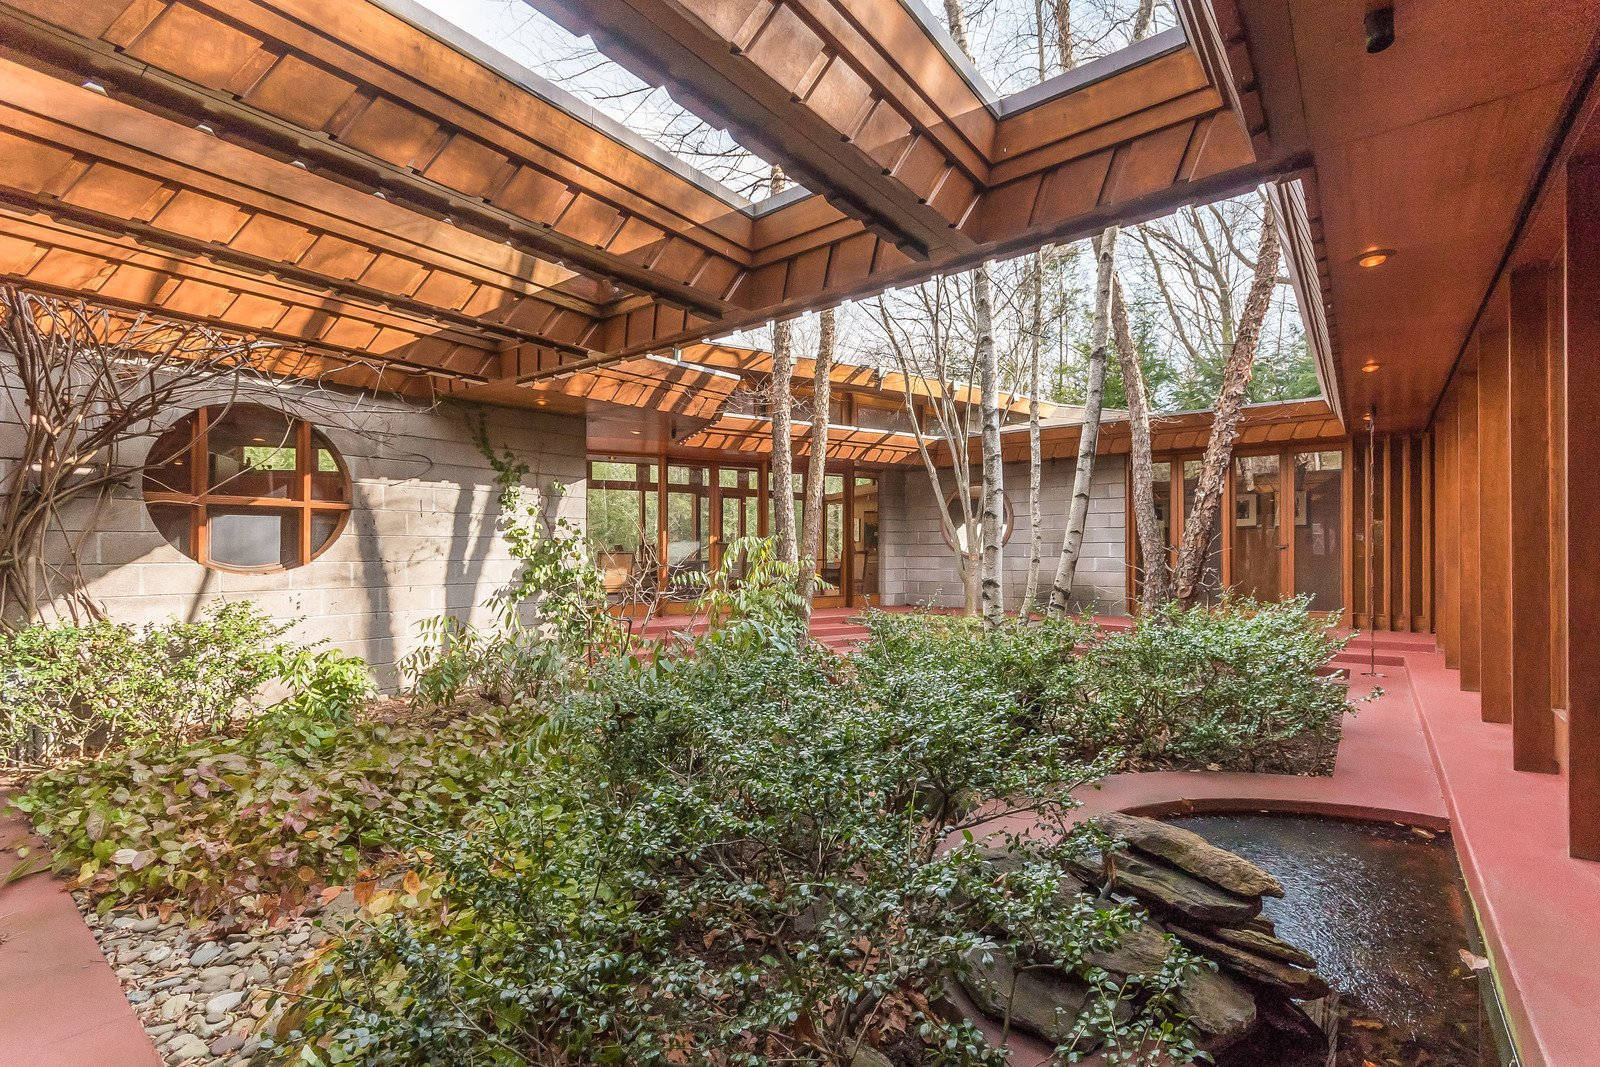 Since Wright was consistently focused on nature, he built an internal courtyard that creates a peaceful retreat in the middle of the structure.  Tirranna